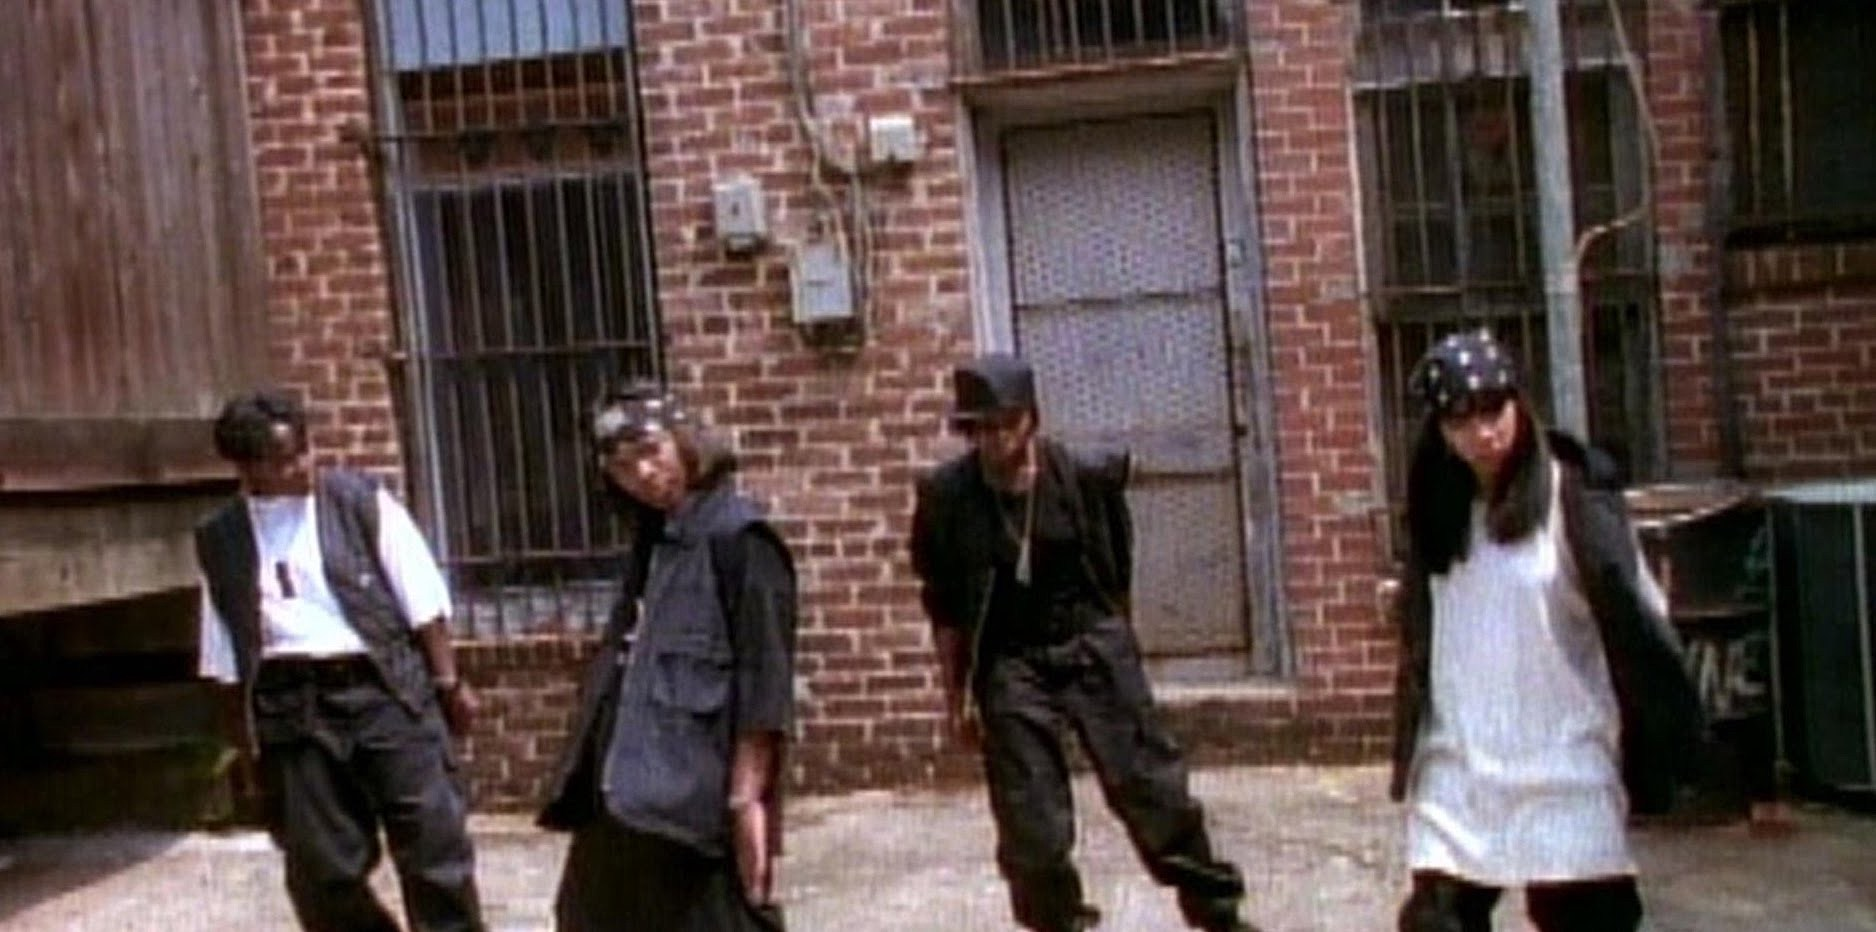 c07085b25e Xscape - 'Just Kickin' It': Throwback Video of the Day